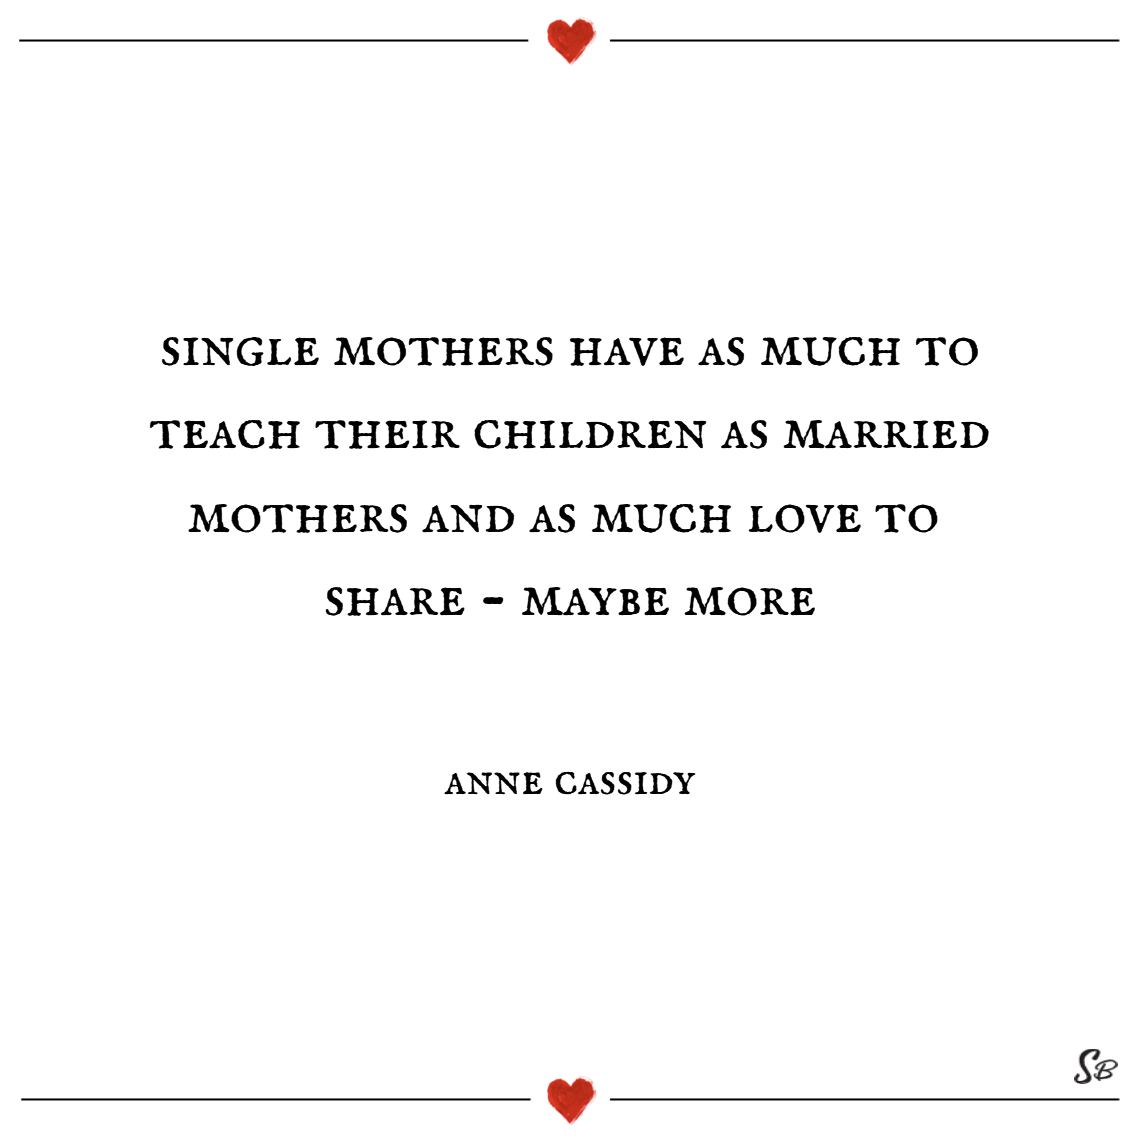 Single mothers have as much to teach their children as married mothers and as much love to share maybe more. – anne cassidy